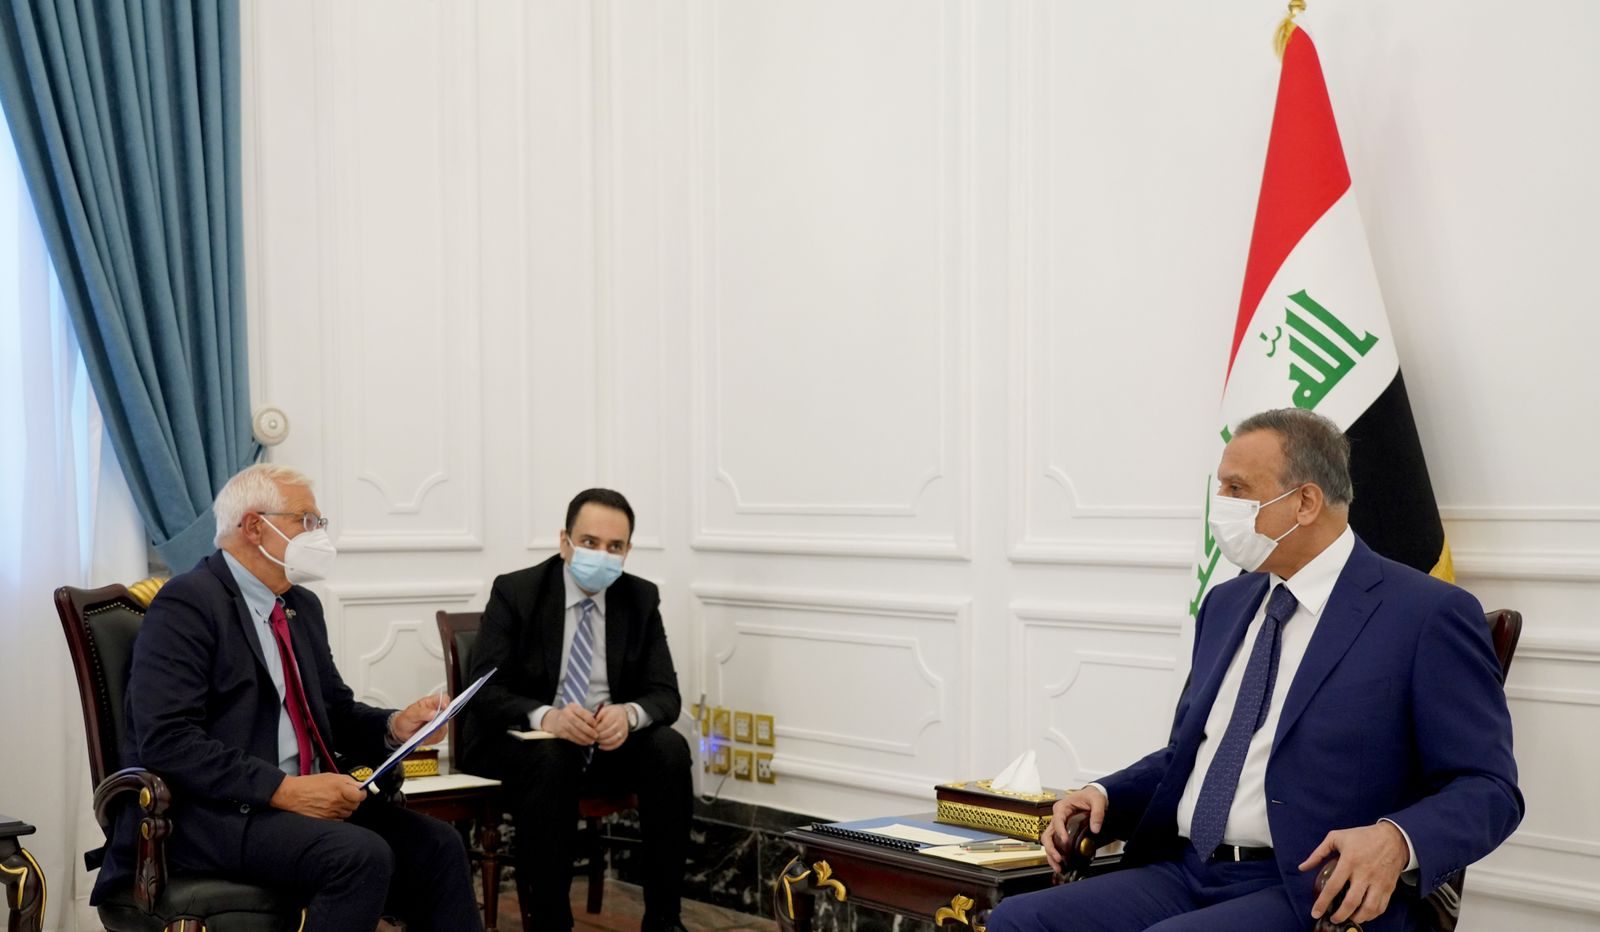 The European Union confirms its support for the Iraqi elections